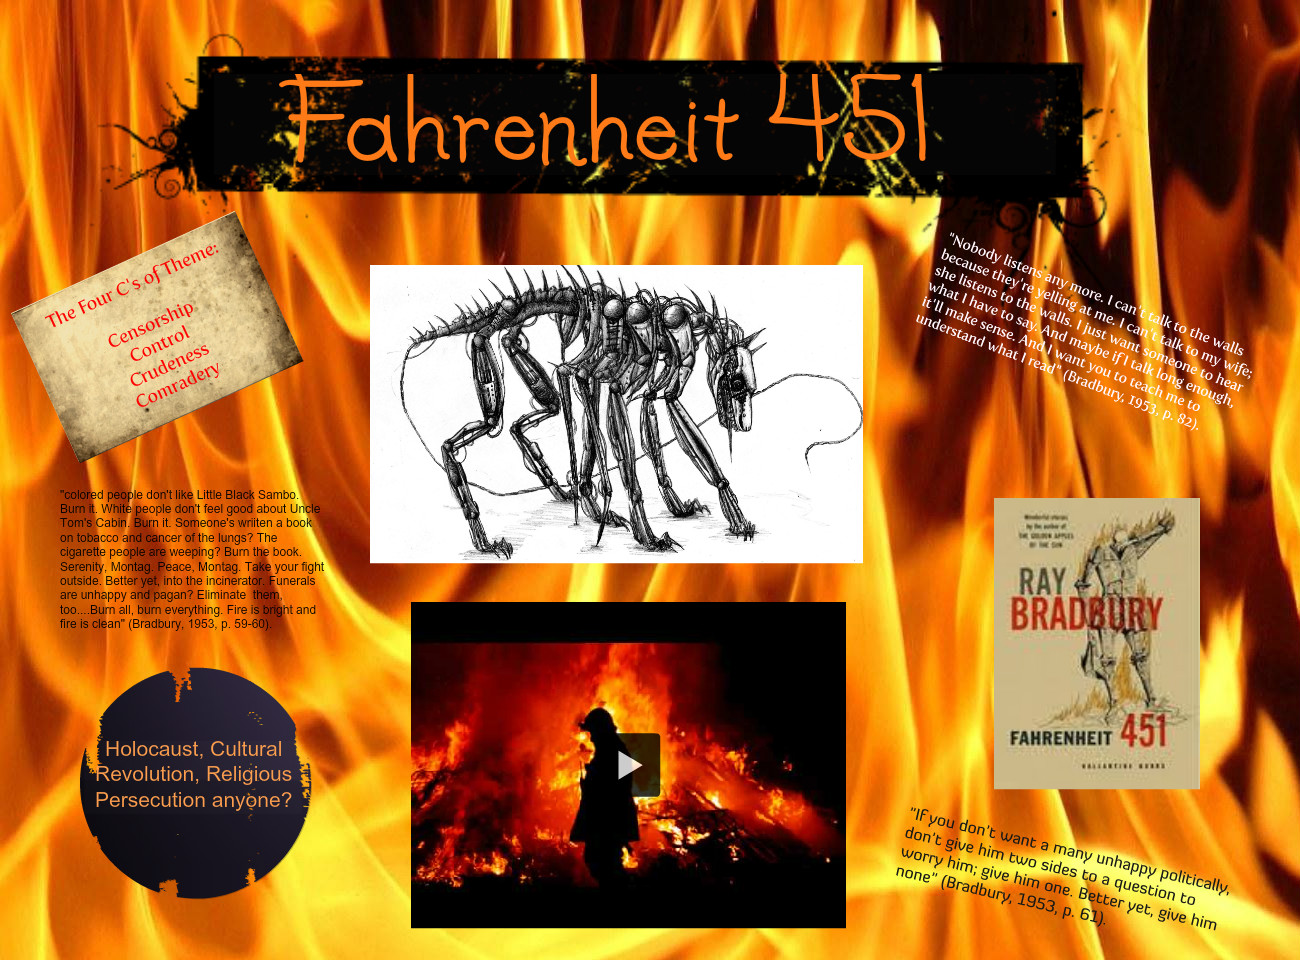 Farenheit 451 Book vs. Movie